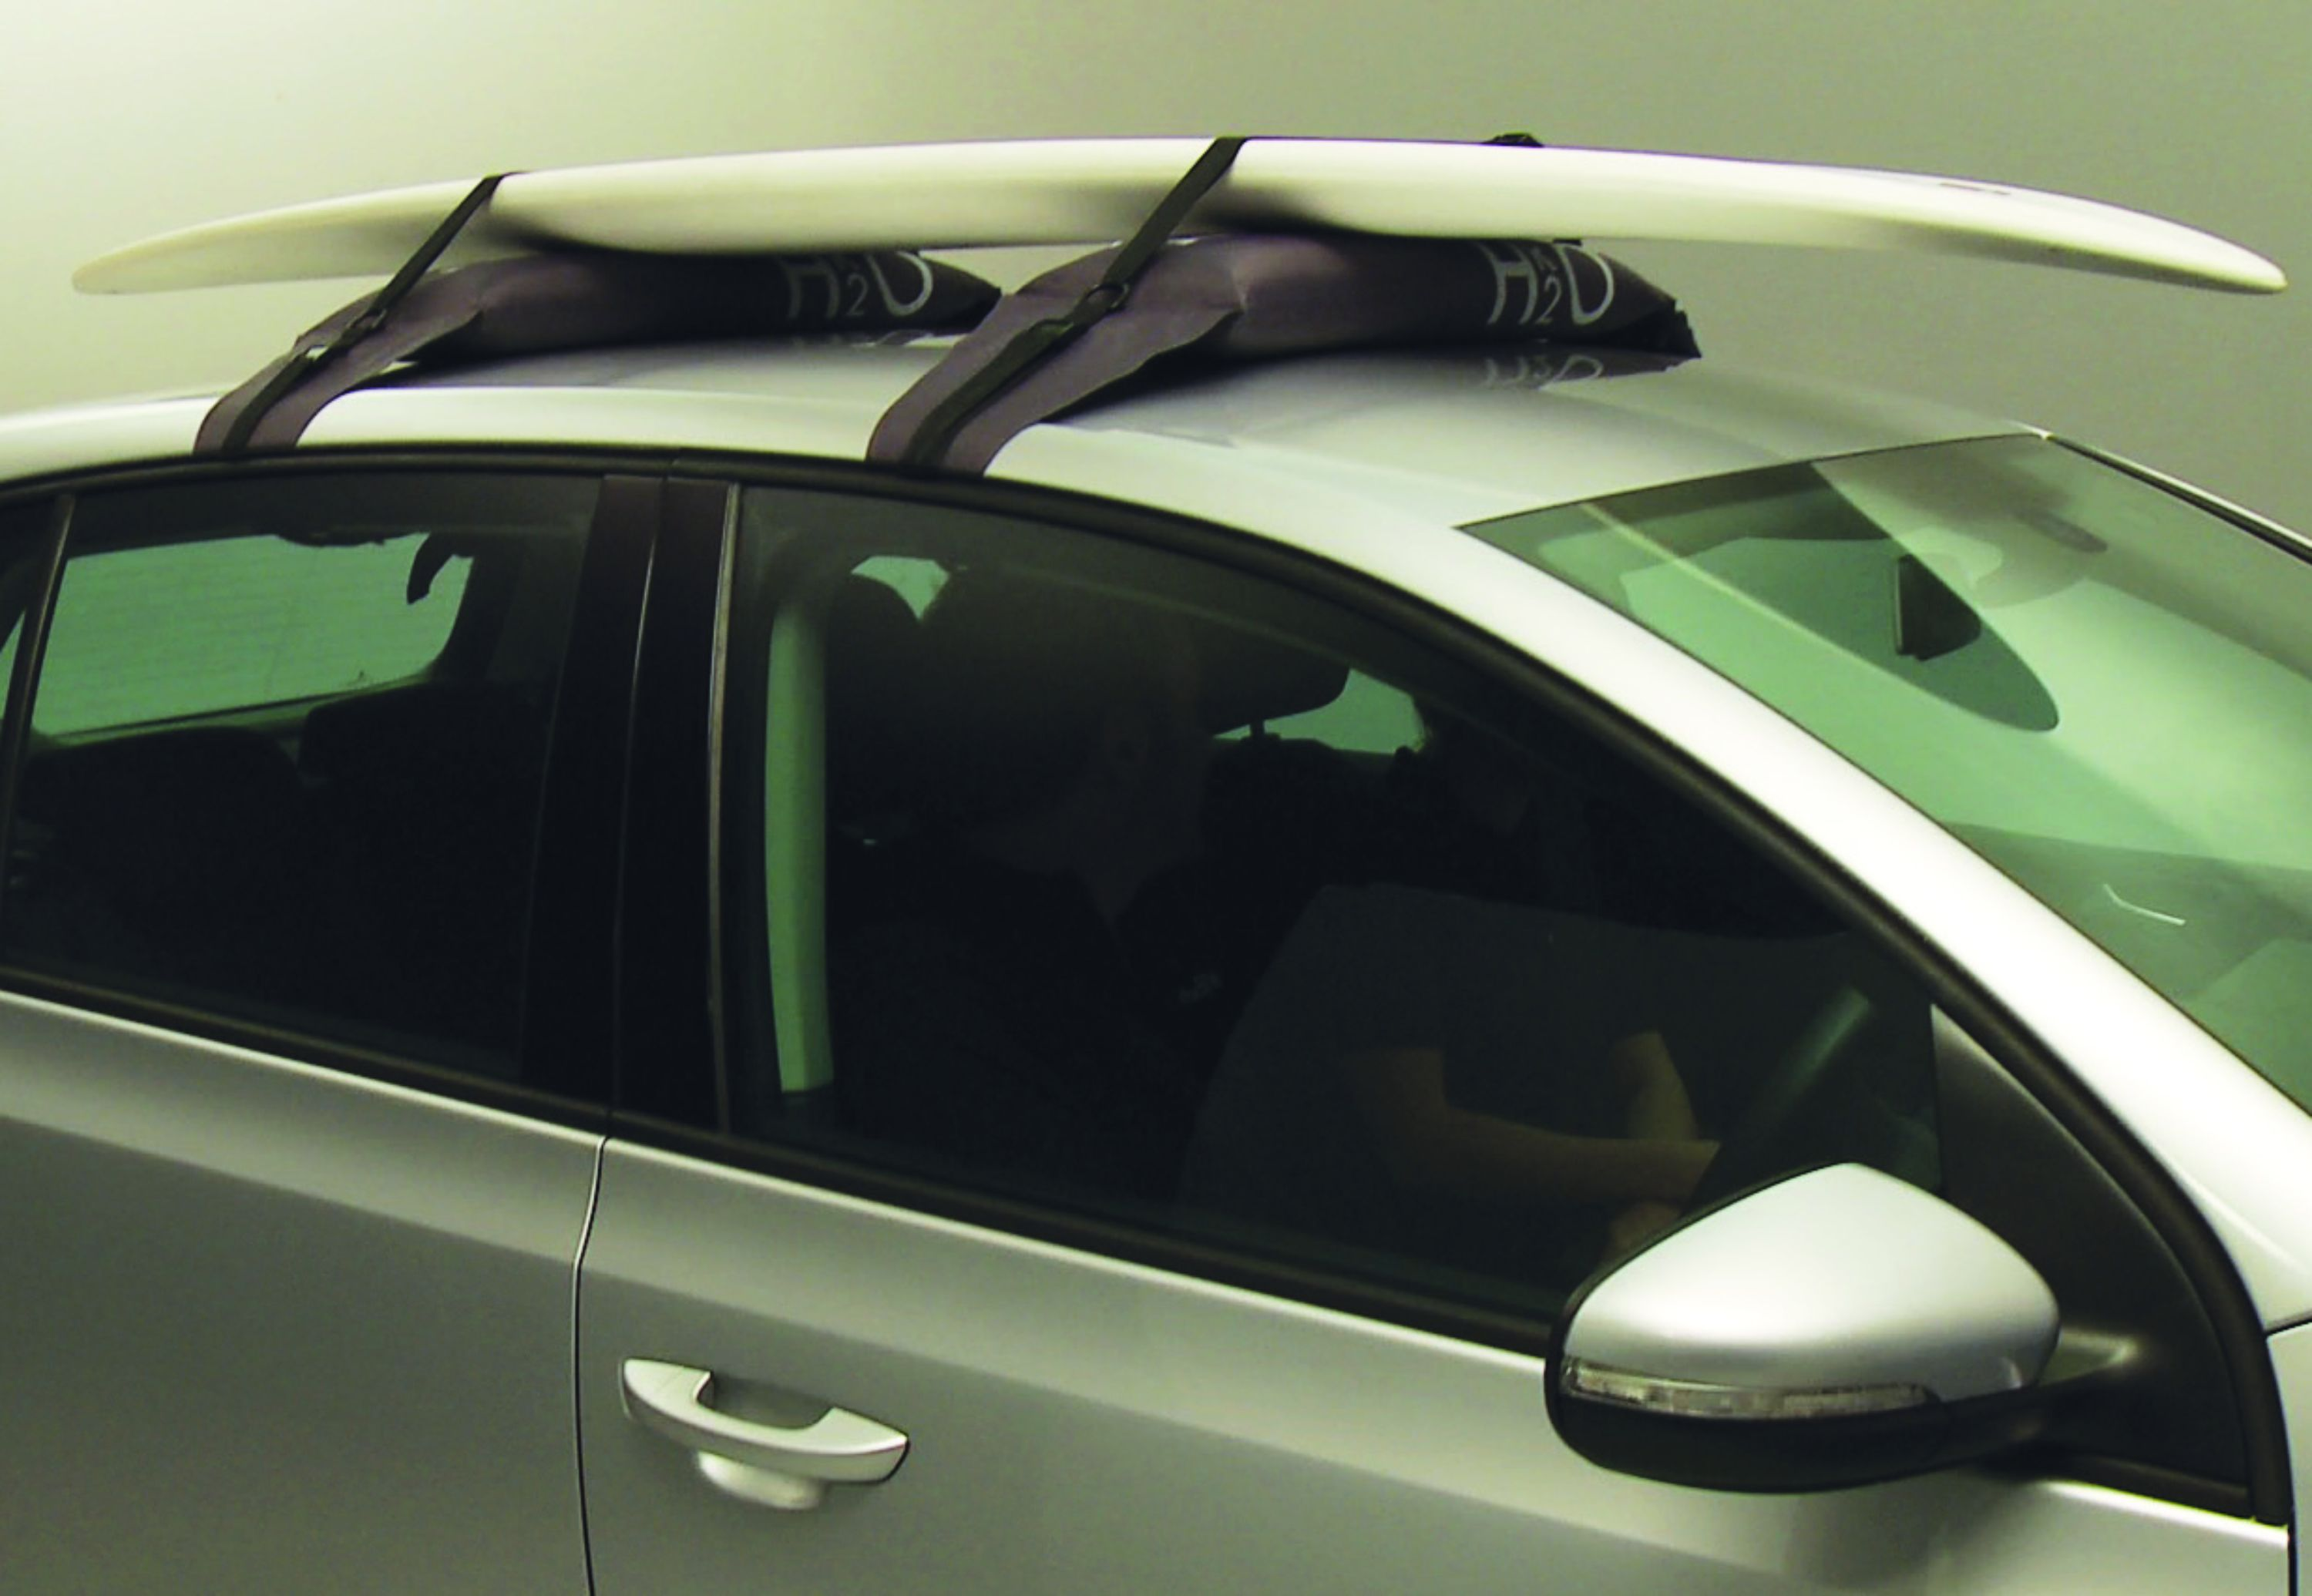 tm board roof paddle car inflatable rack stand up